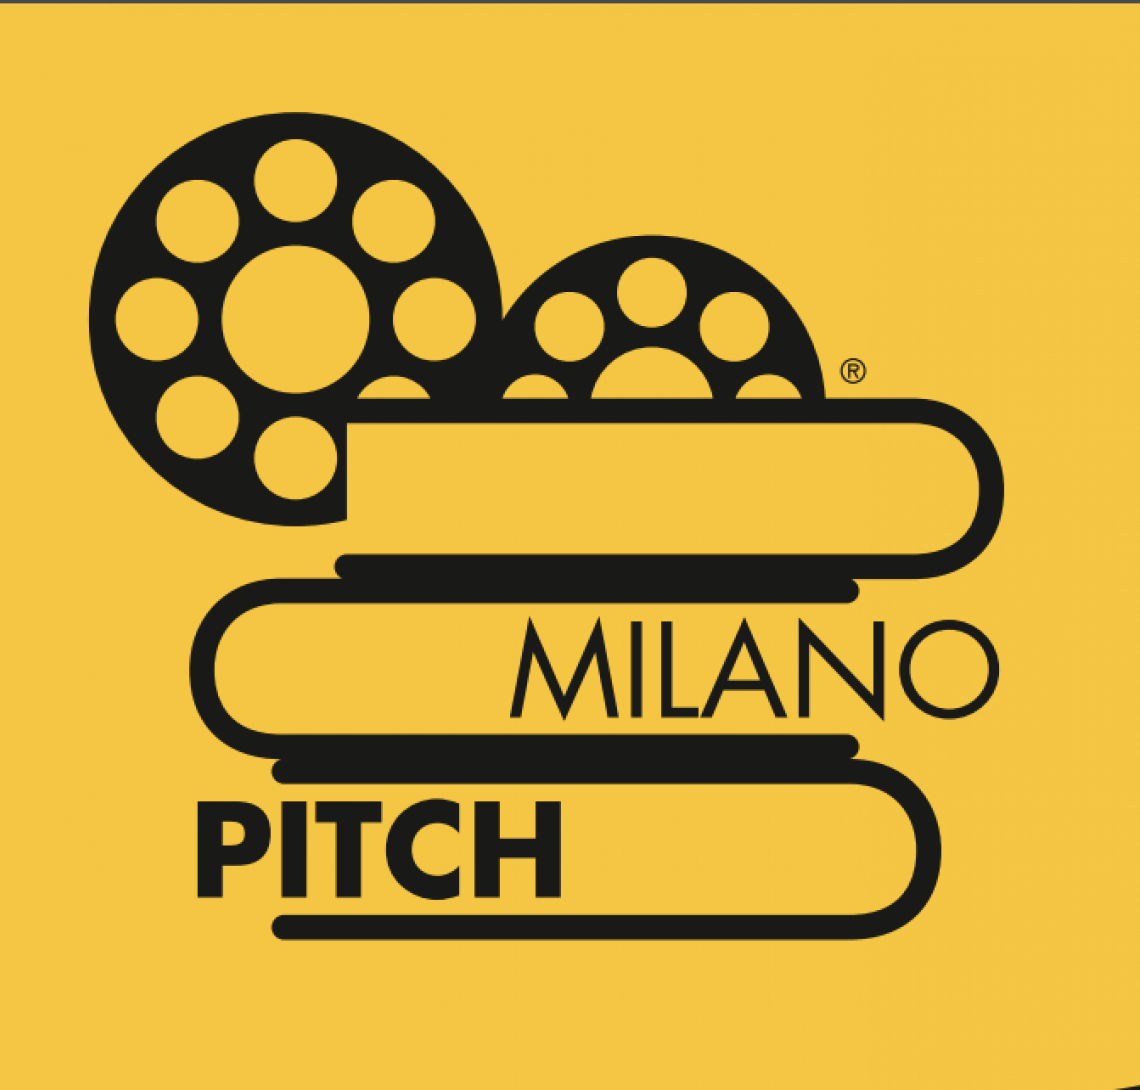 Milano Pitch: Editoria, Cinema e Tv incontrano nuovi talenti